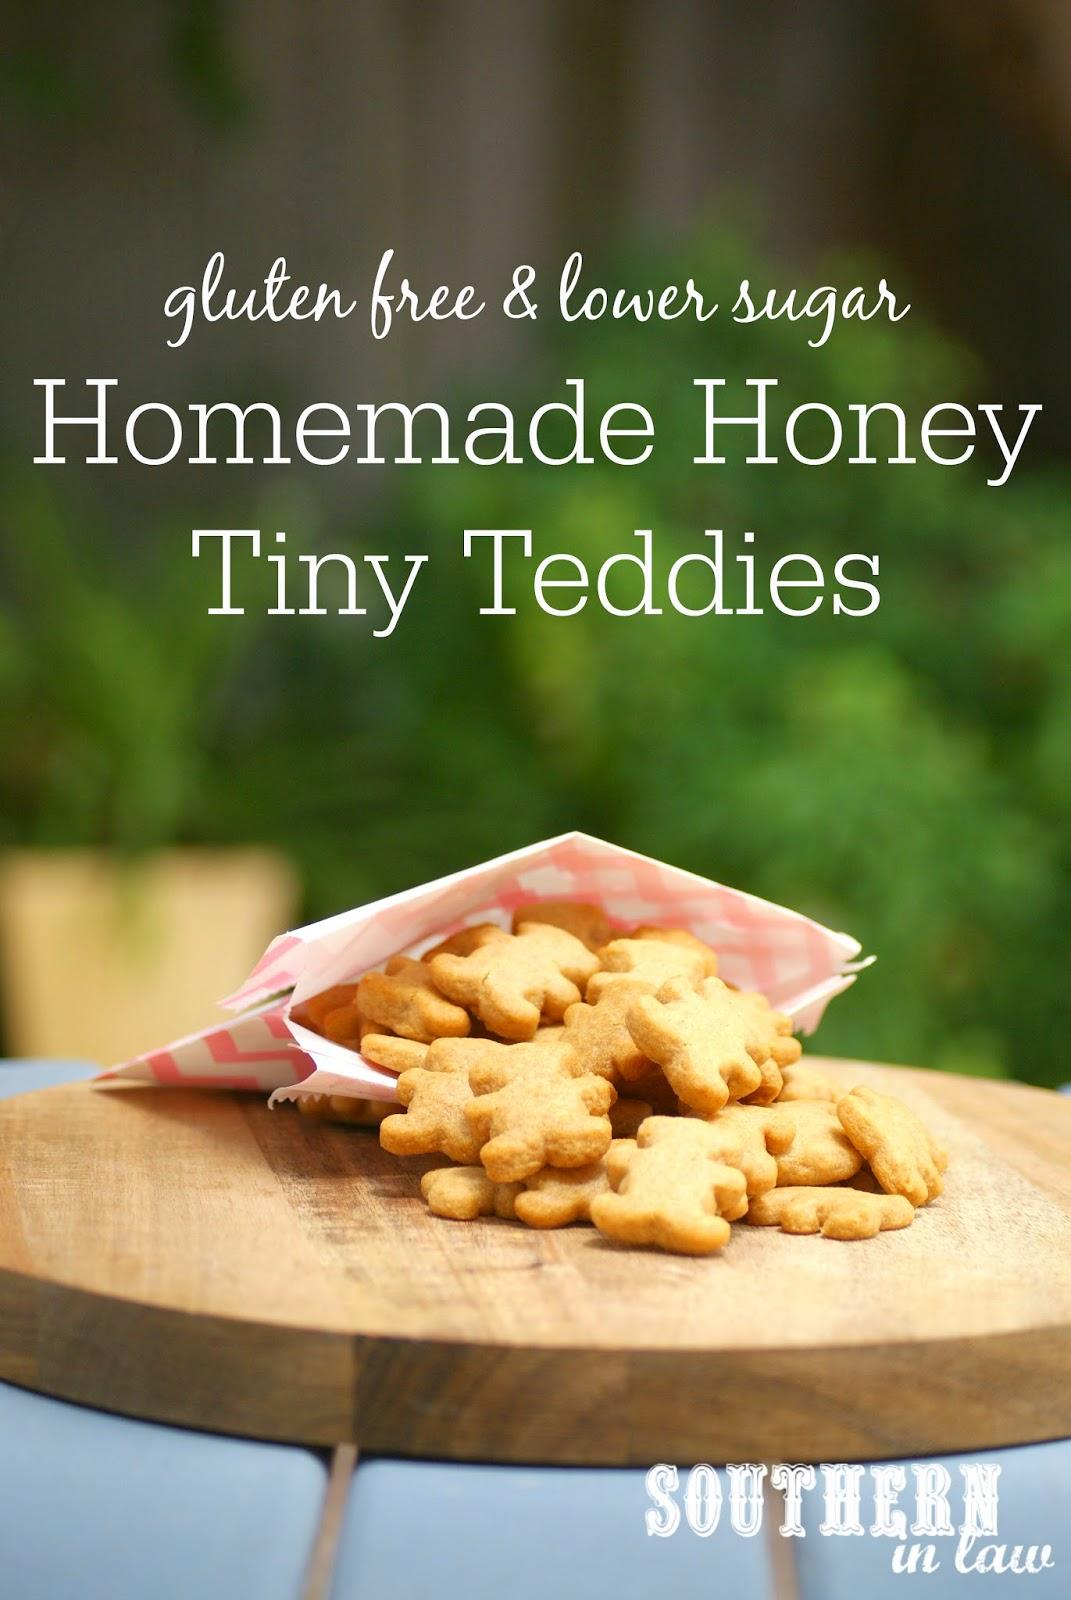 Homemade Honey Tiny Teddies Recipe - gluten free, nut free, egg free, healthy, low sugar